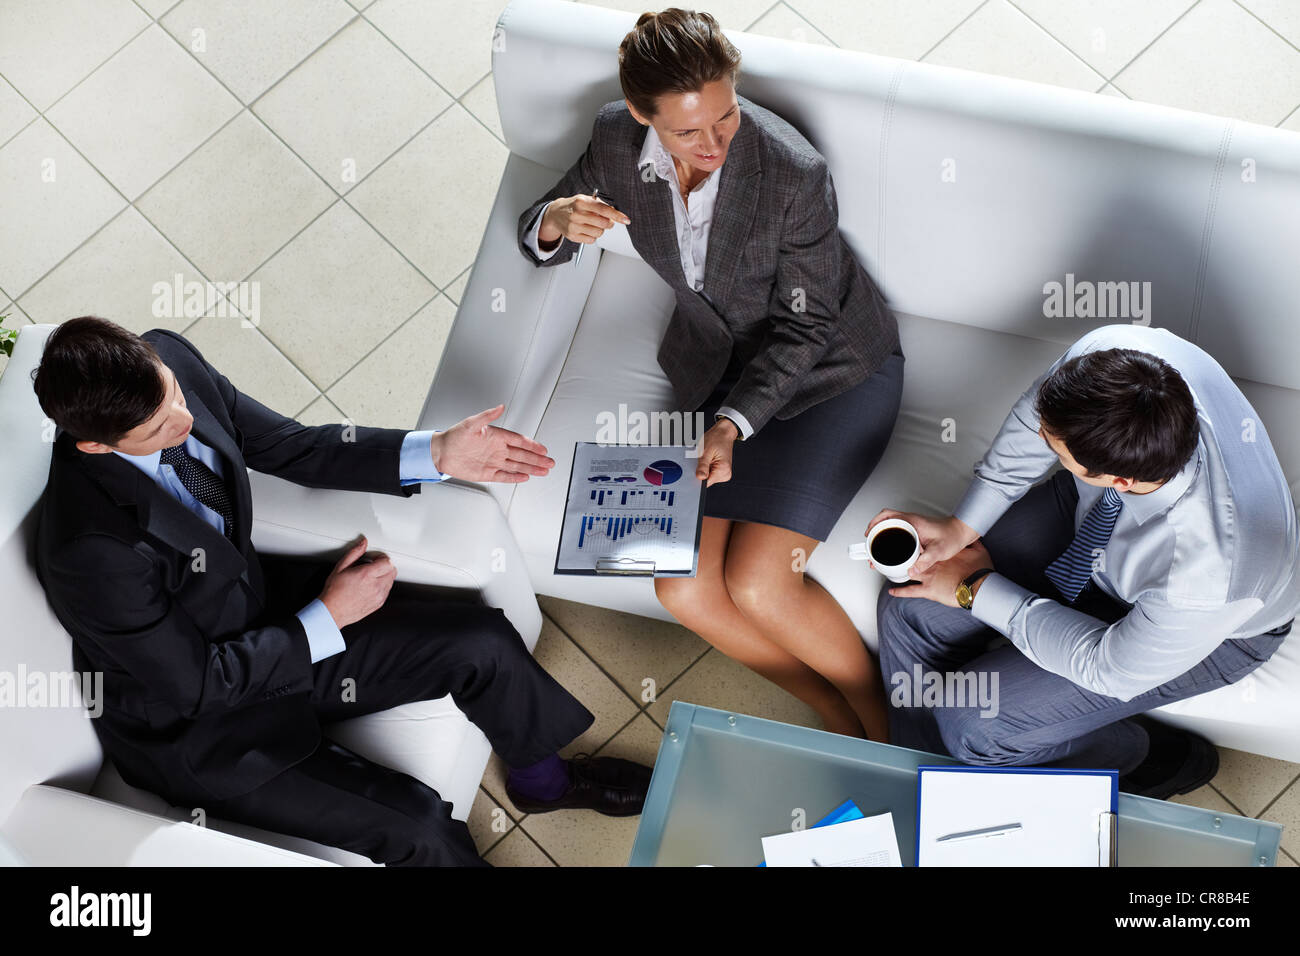 Overview of business team discussing some graphs and diagrams - Stock Image